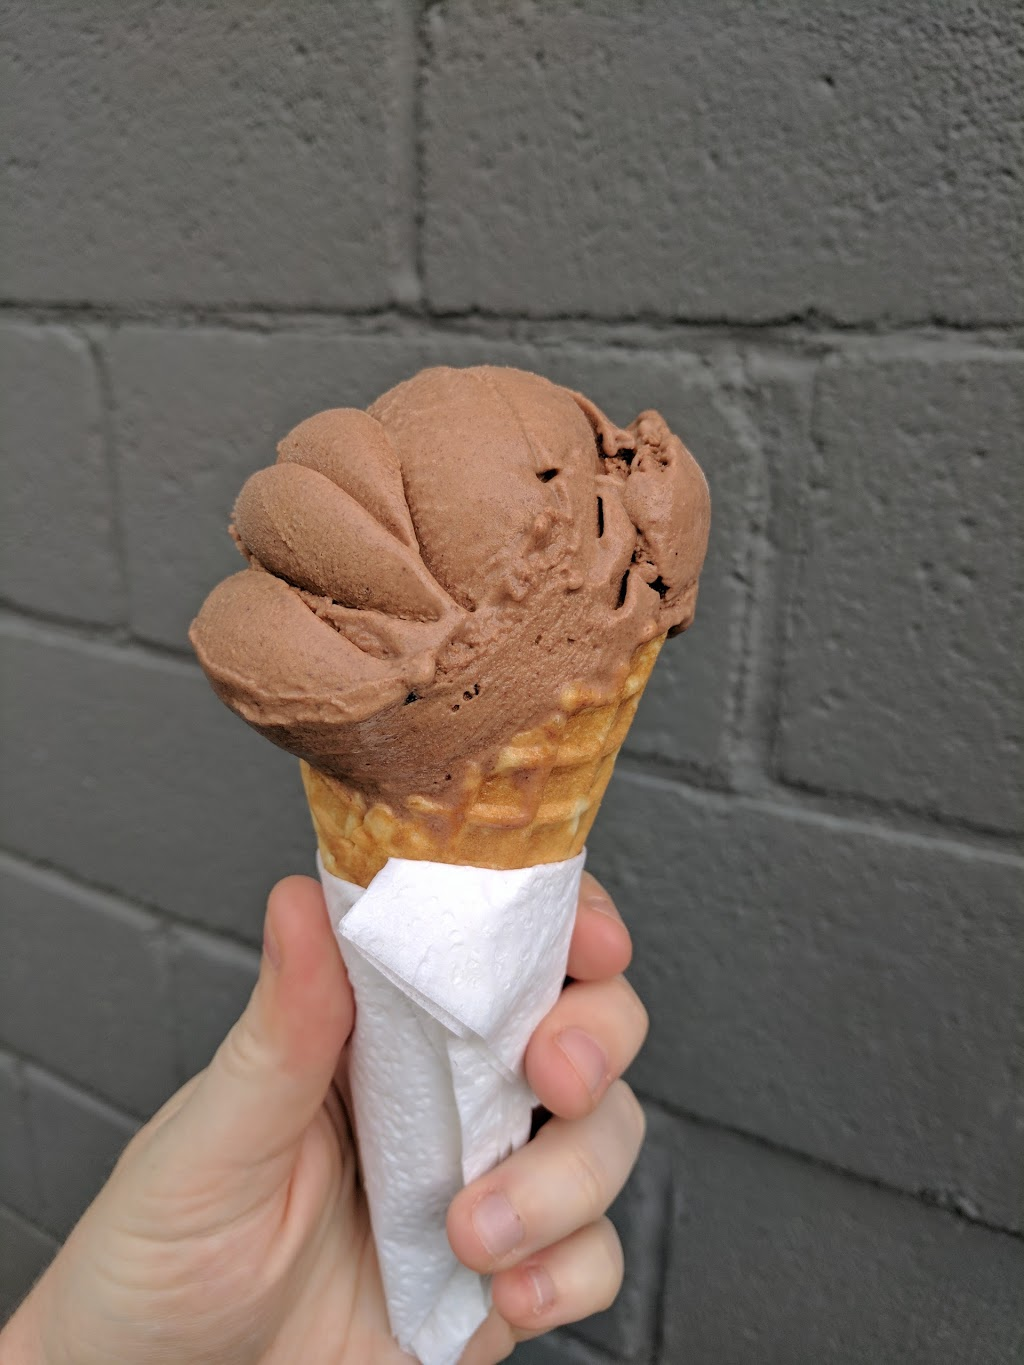 Four All Ice Cream Tasting Room CLOSED for Winter RE-OPENS April | store | 141 Whitney Pl #105, Kitchener, ON N2G 2X8, Canada | 5196350490 OR +1 519-635-0490